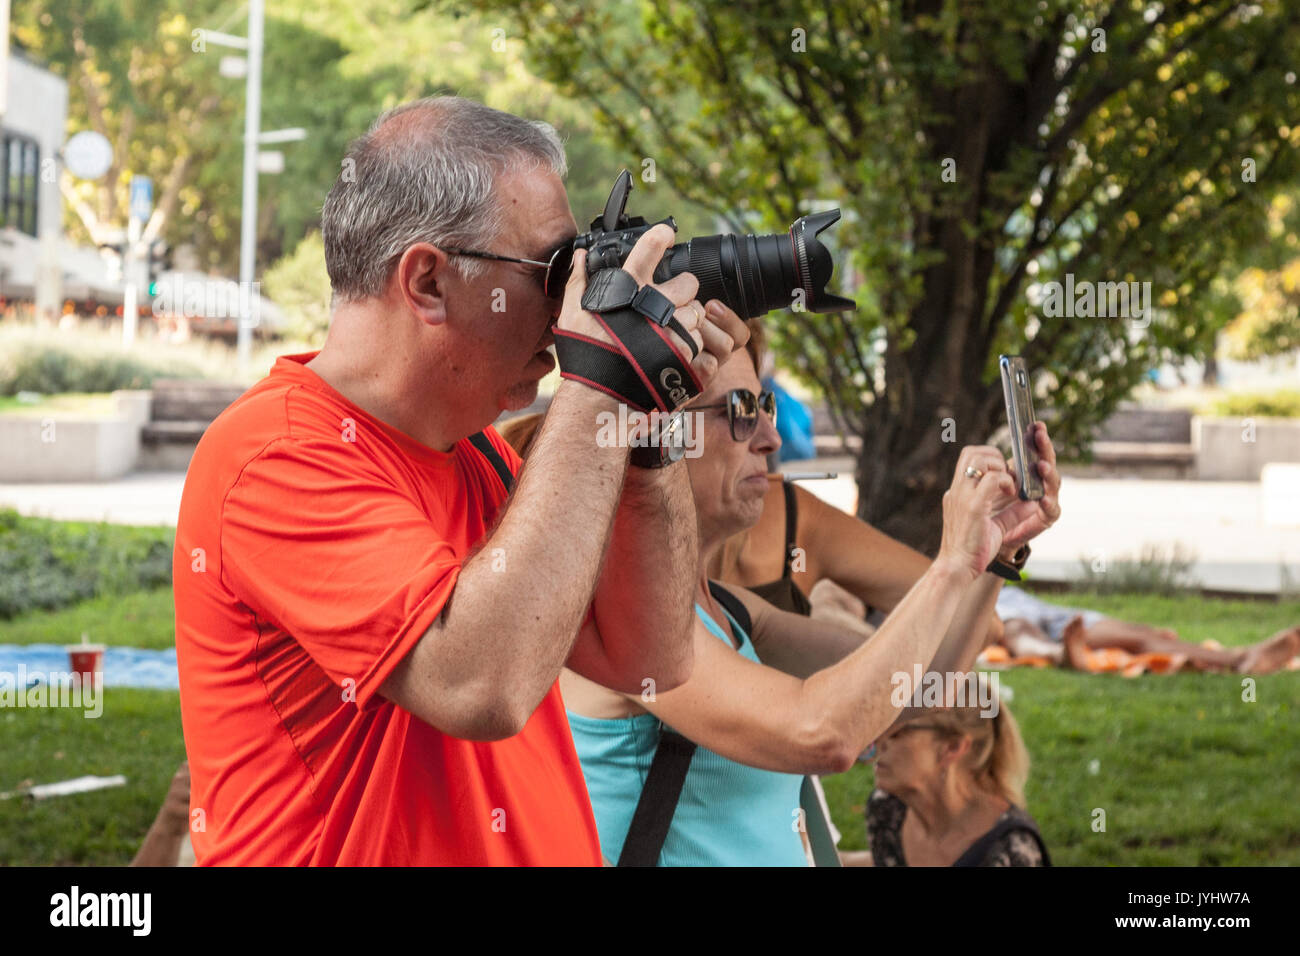 BUDAPEST, HUNGARY - AUGUST 11, 2017: Two people taking pictures in a Budapest park, one using a semi professional - Stock Image